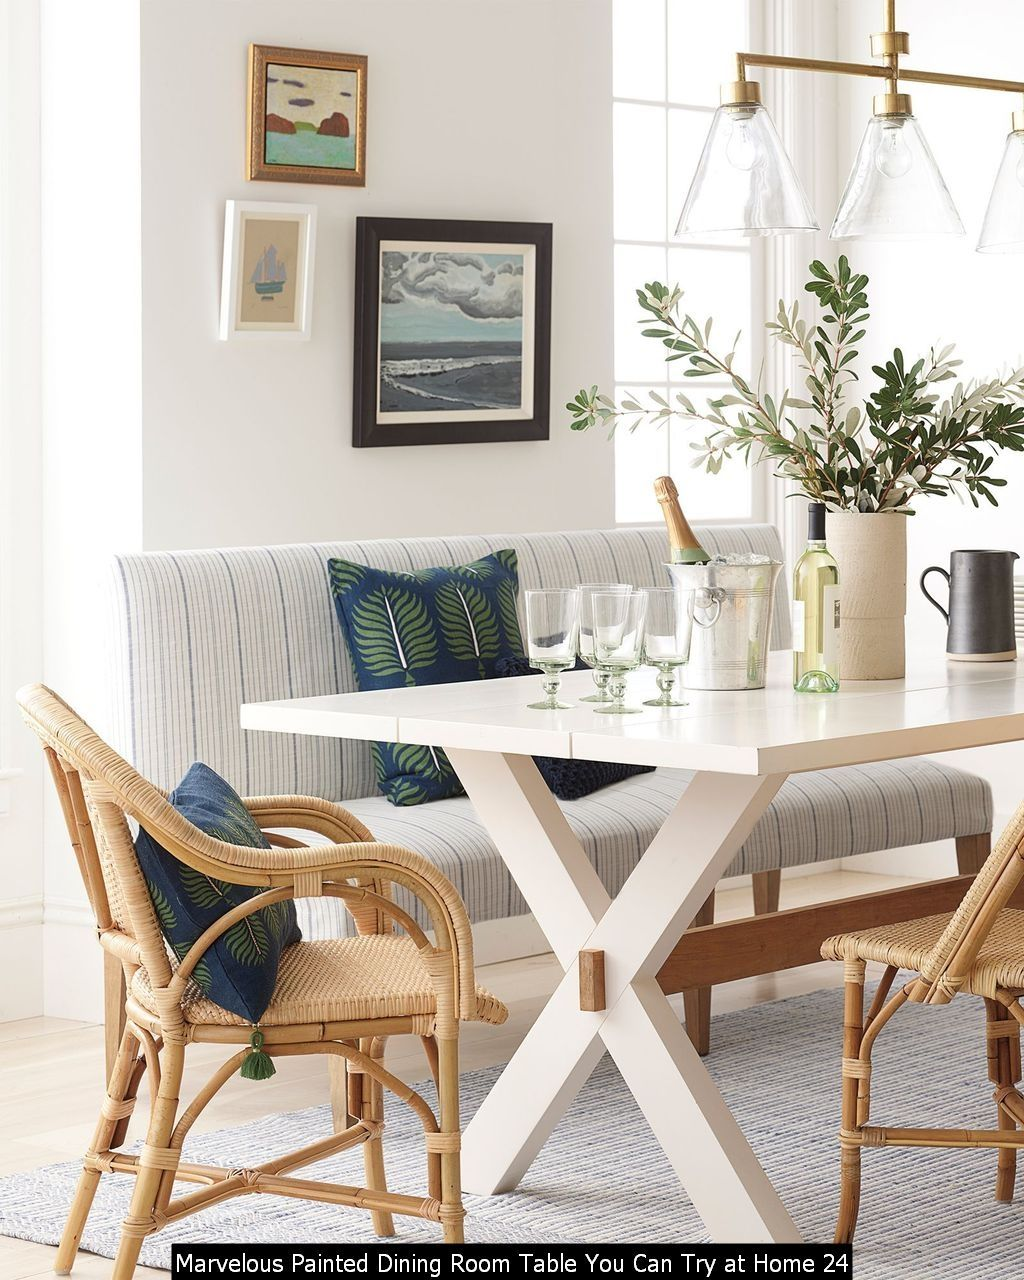 30 Marvelous Painted Dining Room Table You Can Try At Home In 2020 Painted Dining Room Table Coastal Dining Room Dining Room Design